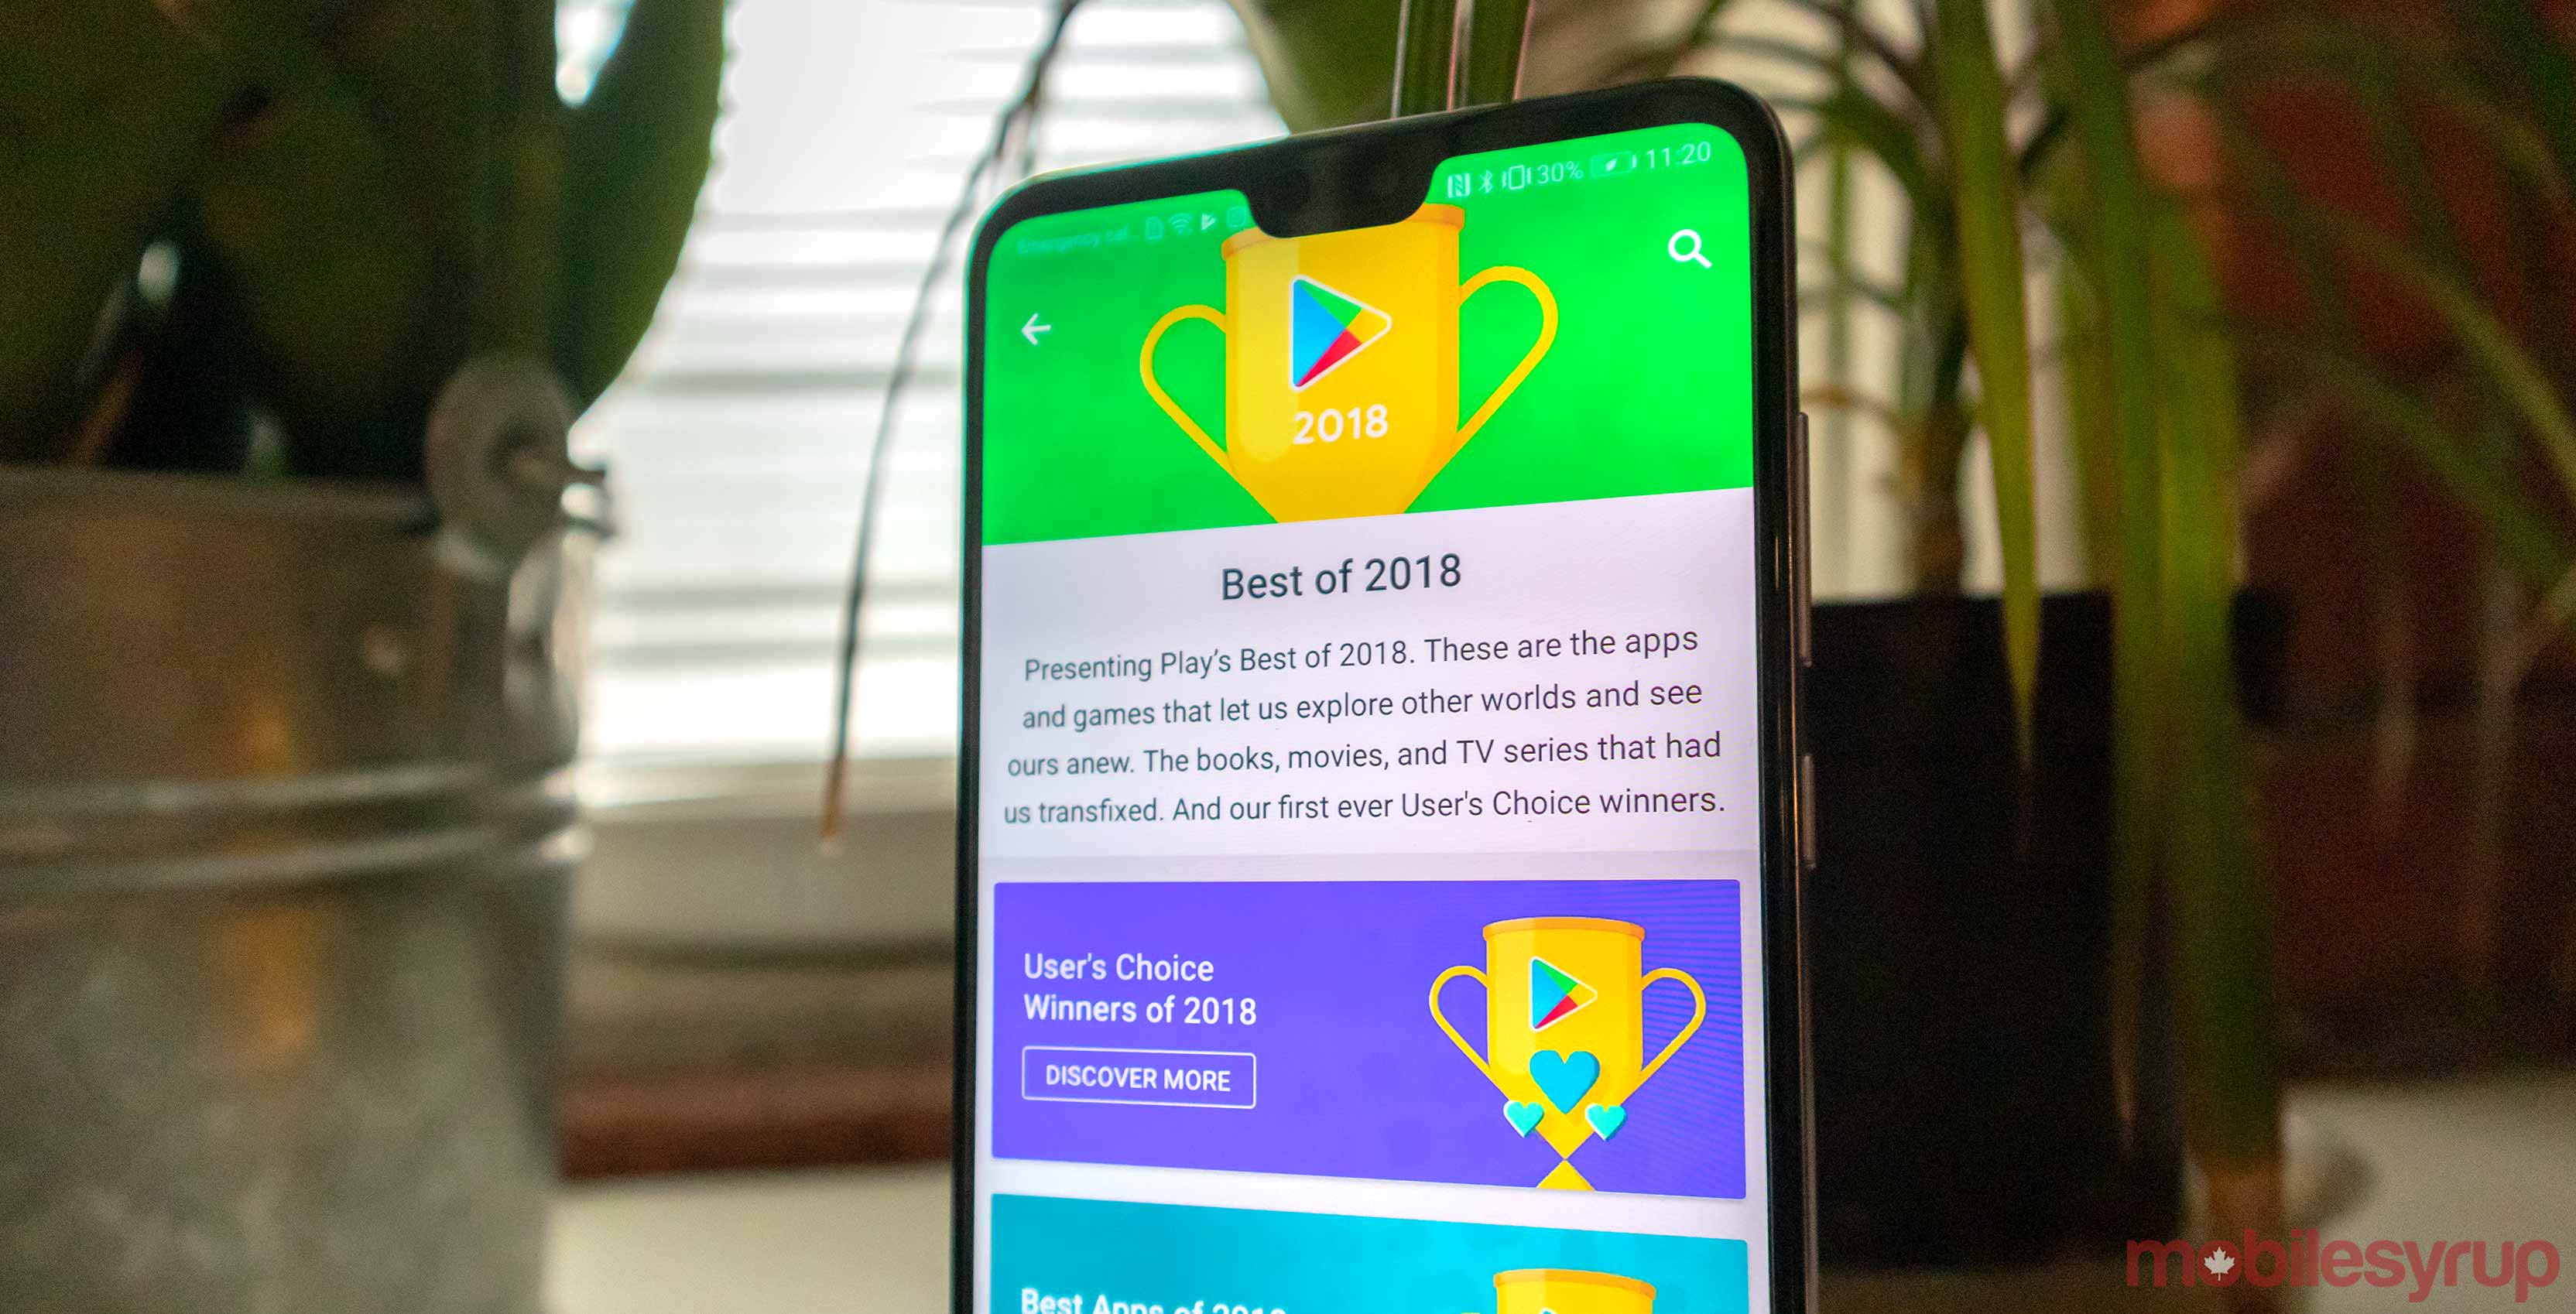 This Language App Is Google's Pick for Best App of 2018